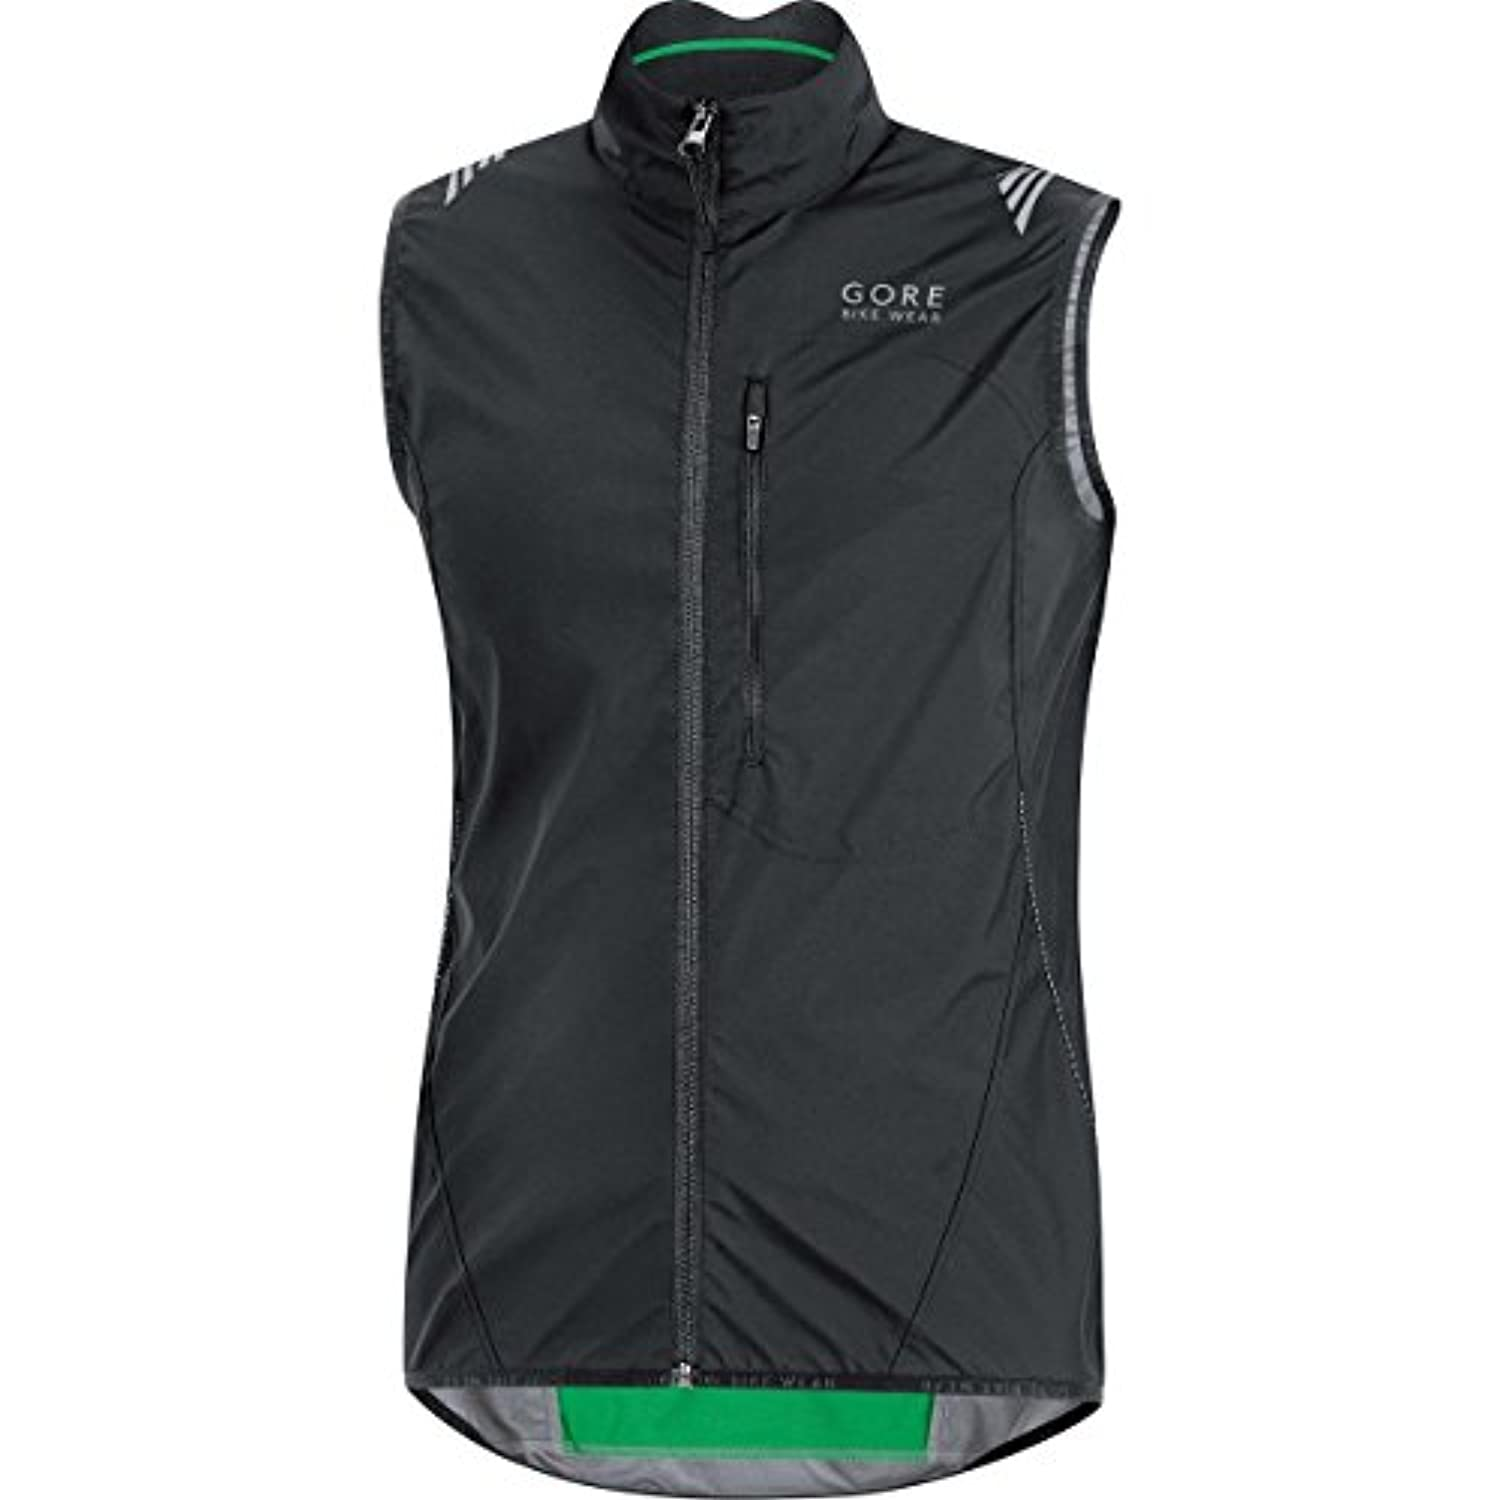 GORE BIKE WEAR, Homme gilet coupe-vent, WINDSTOPPER Active Shell, black ,Taille: S, VWLELE990007